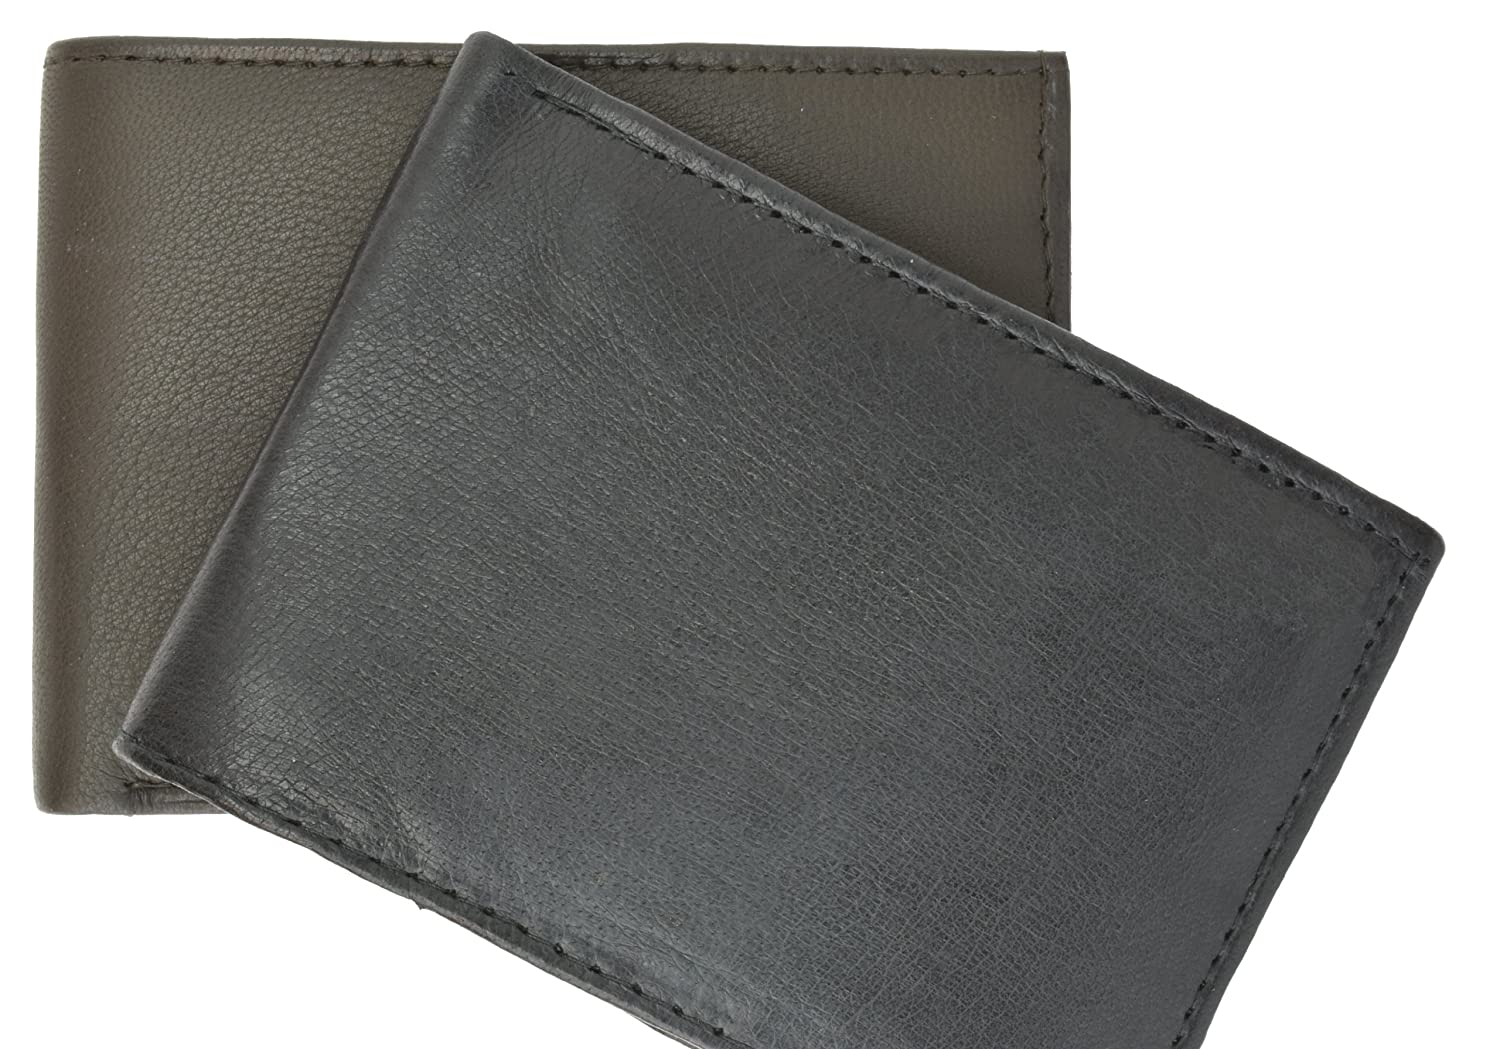 Genuine Lambskin Soft Leather Bifold Credit Card Wallet with Flap by Marshal